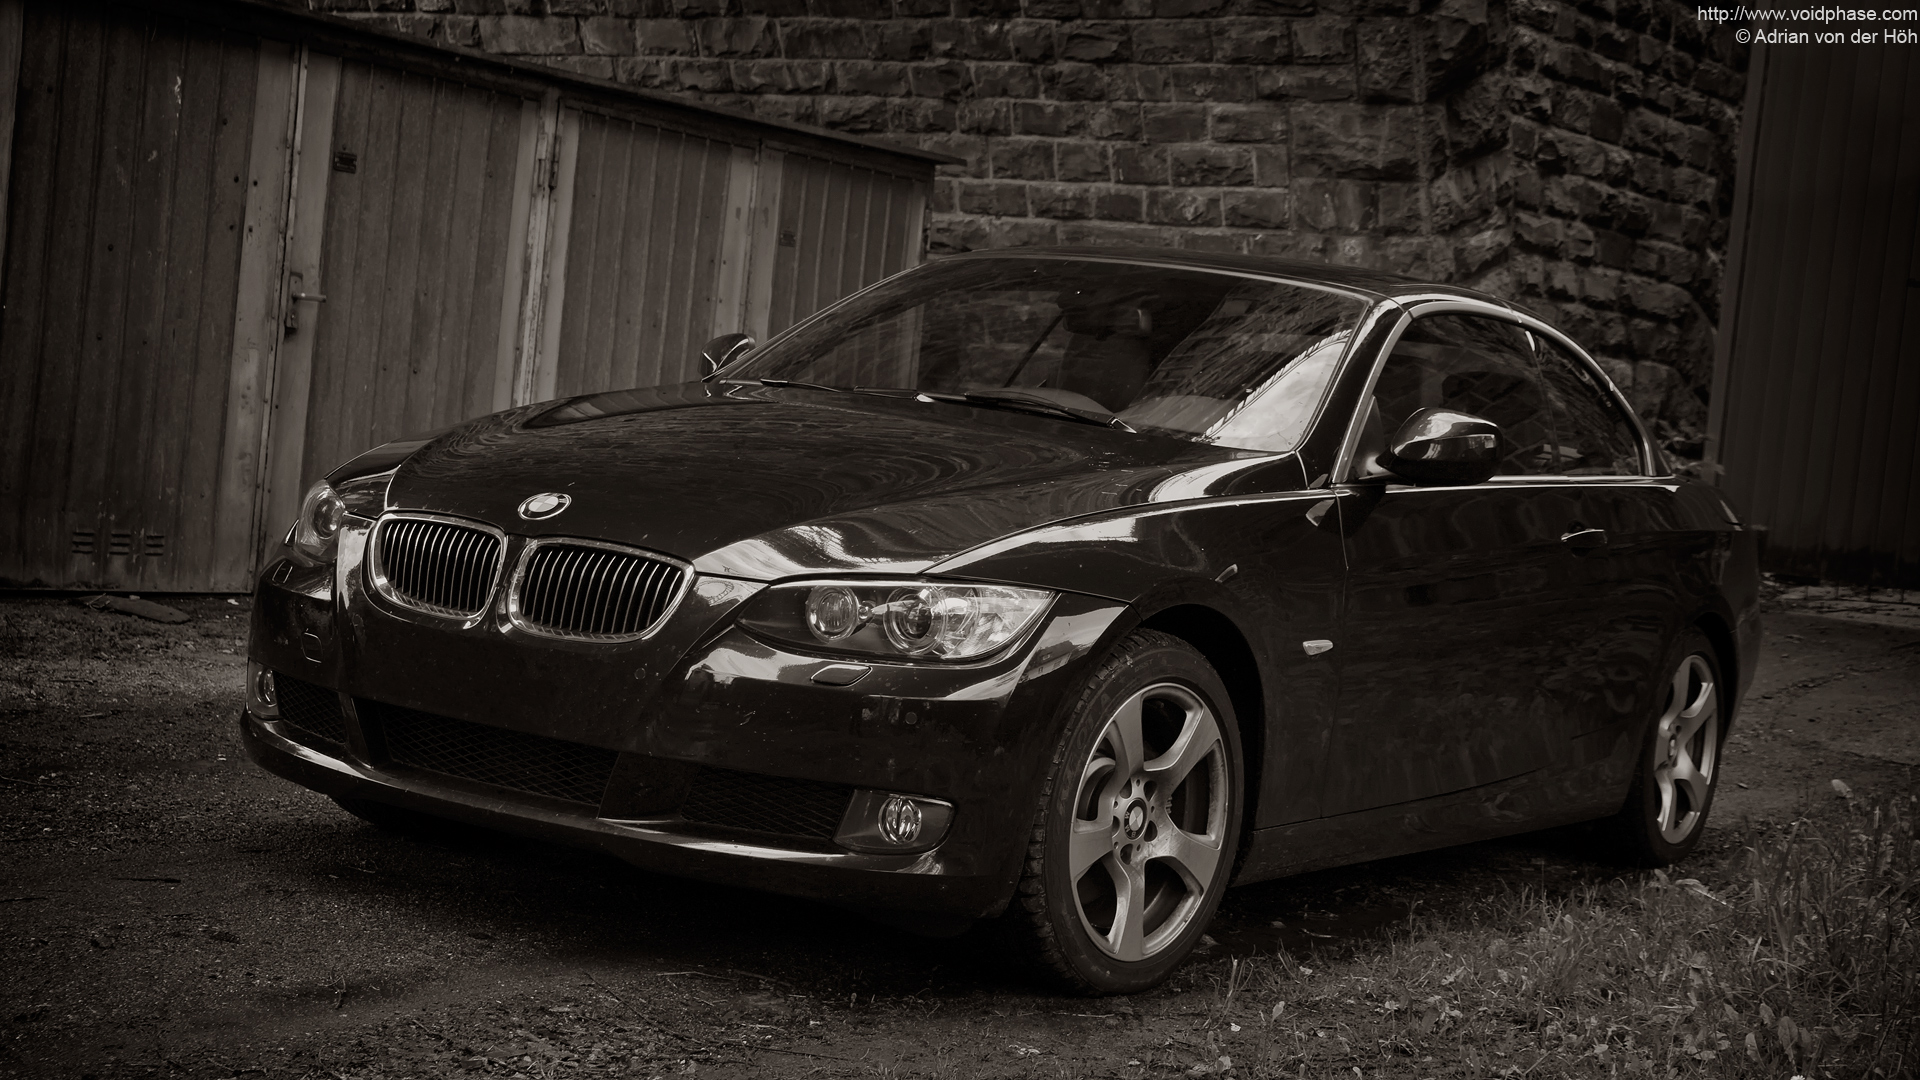 Bmw 3 Series Black Black Bmw 3-series Cabrio